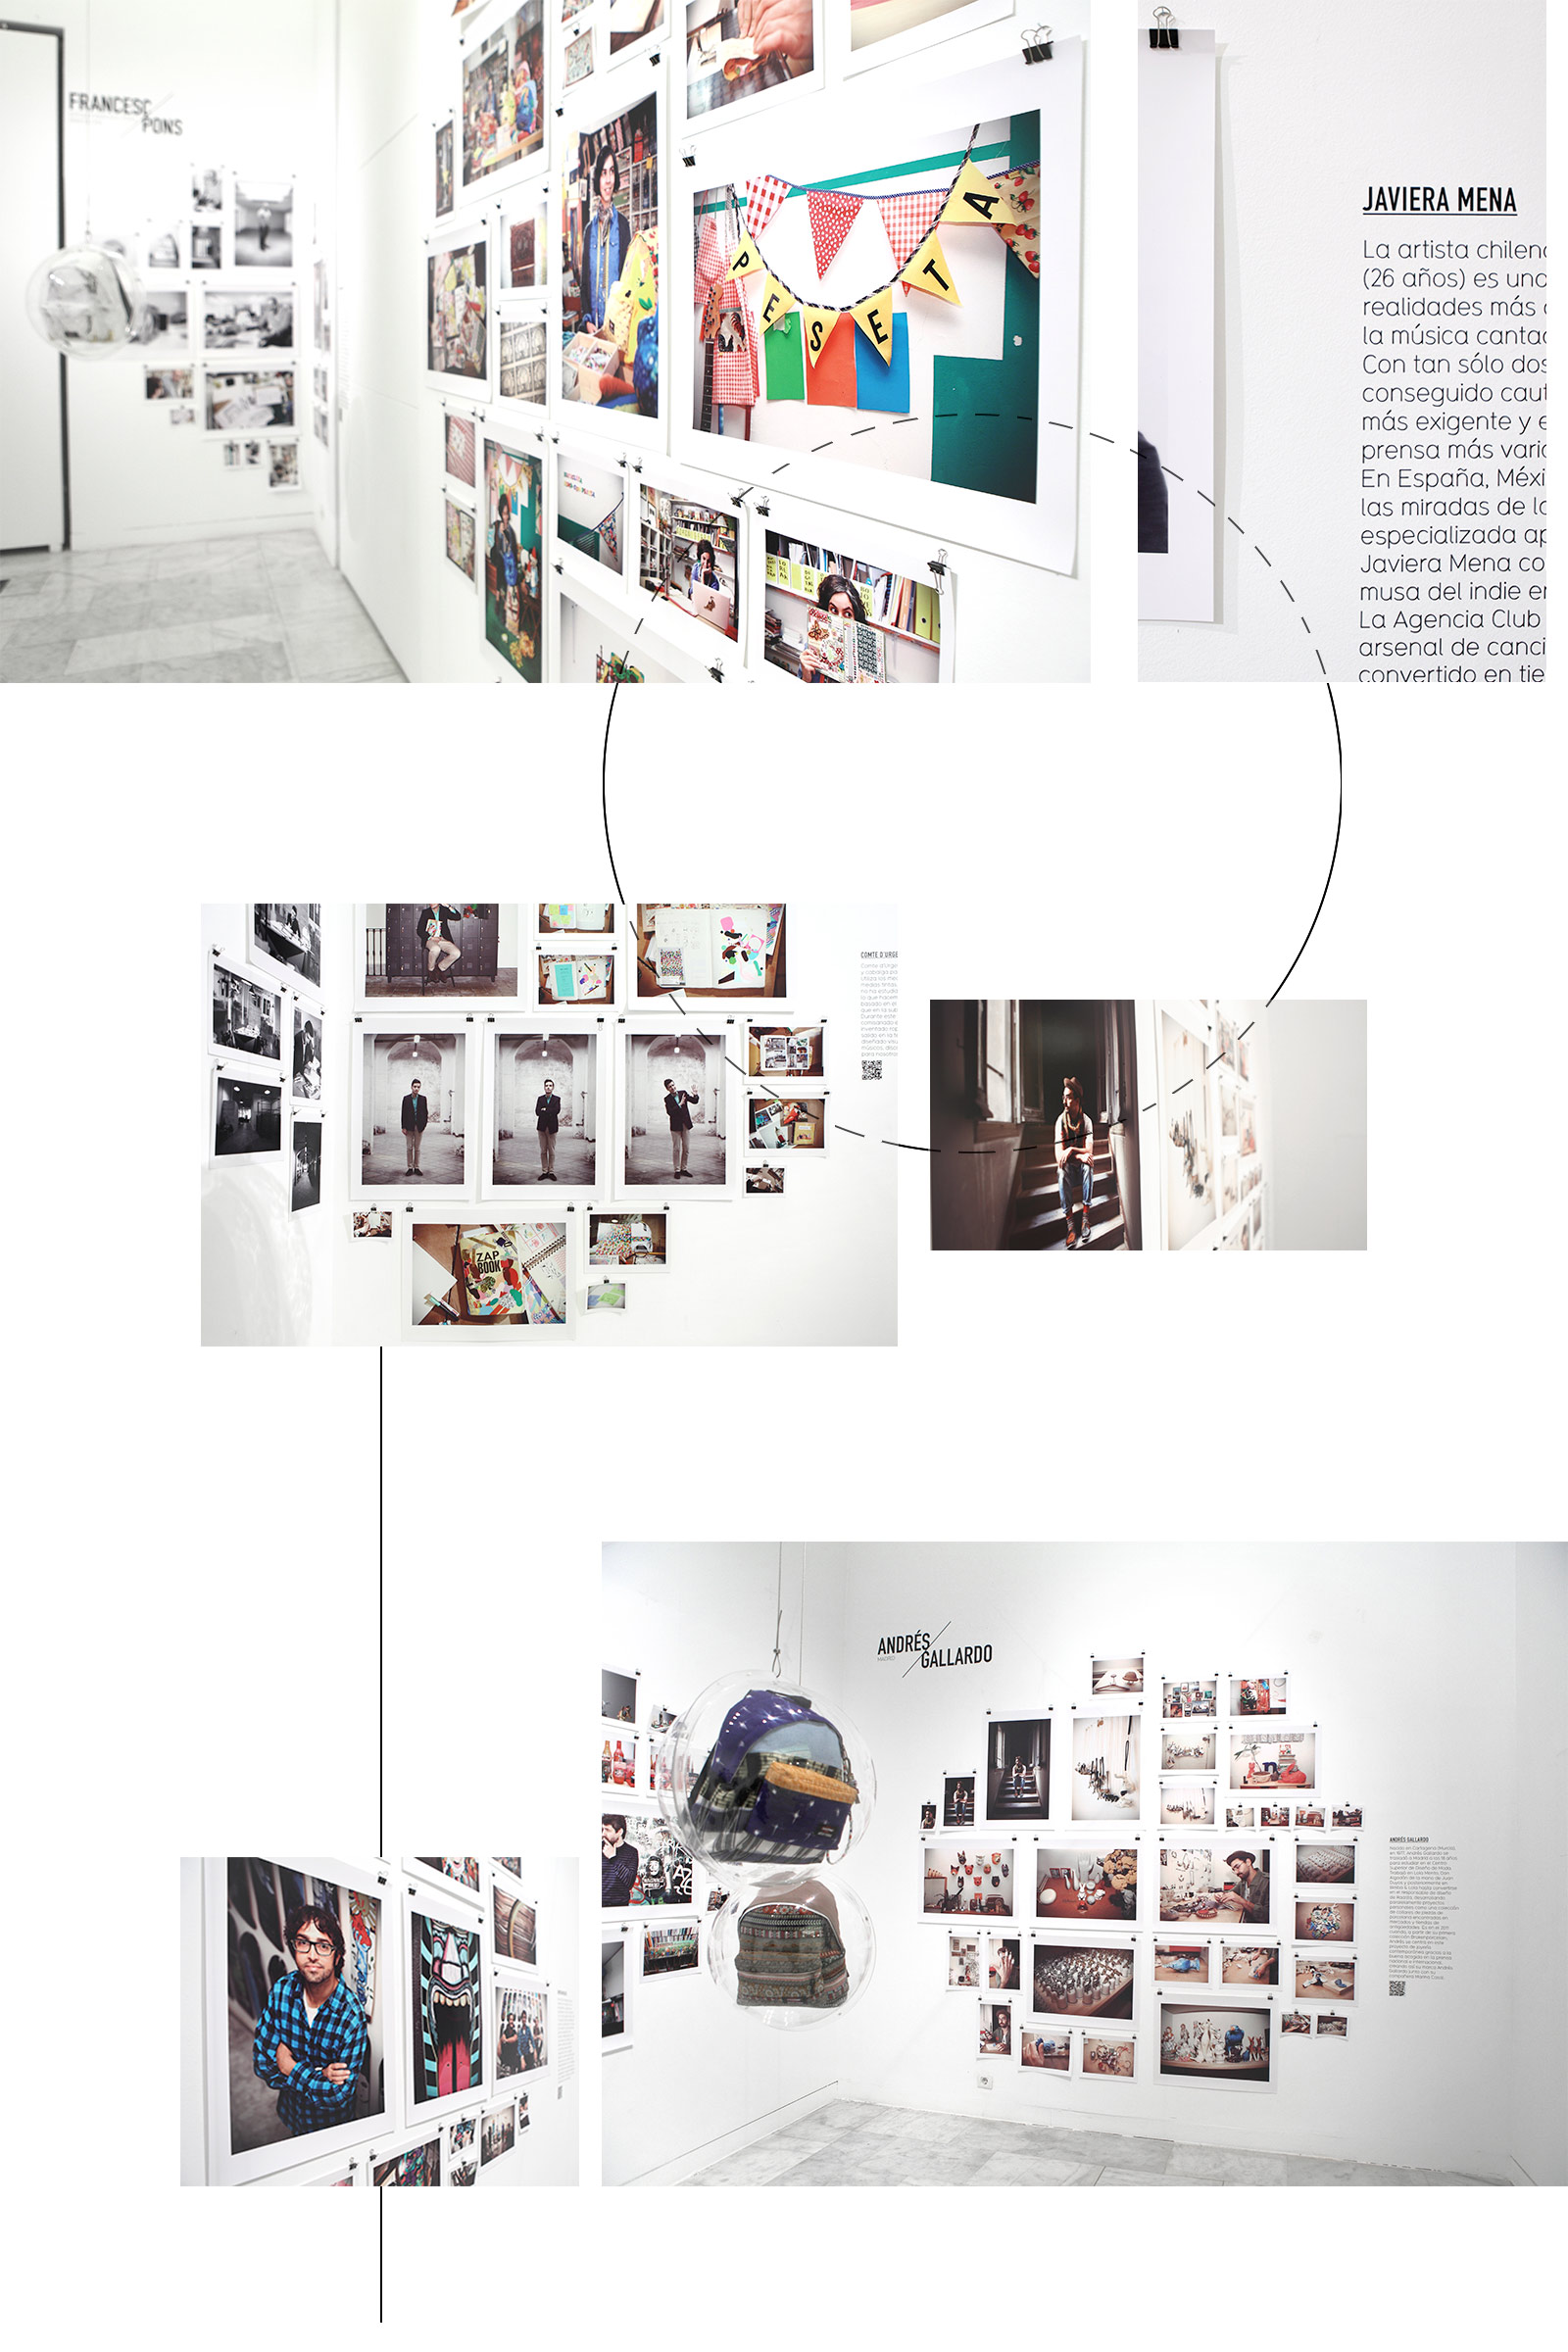 exhibition planning and design Eastpak Artist Studio by Fikera&Quiche